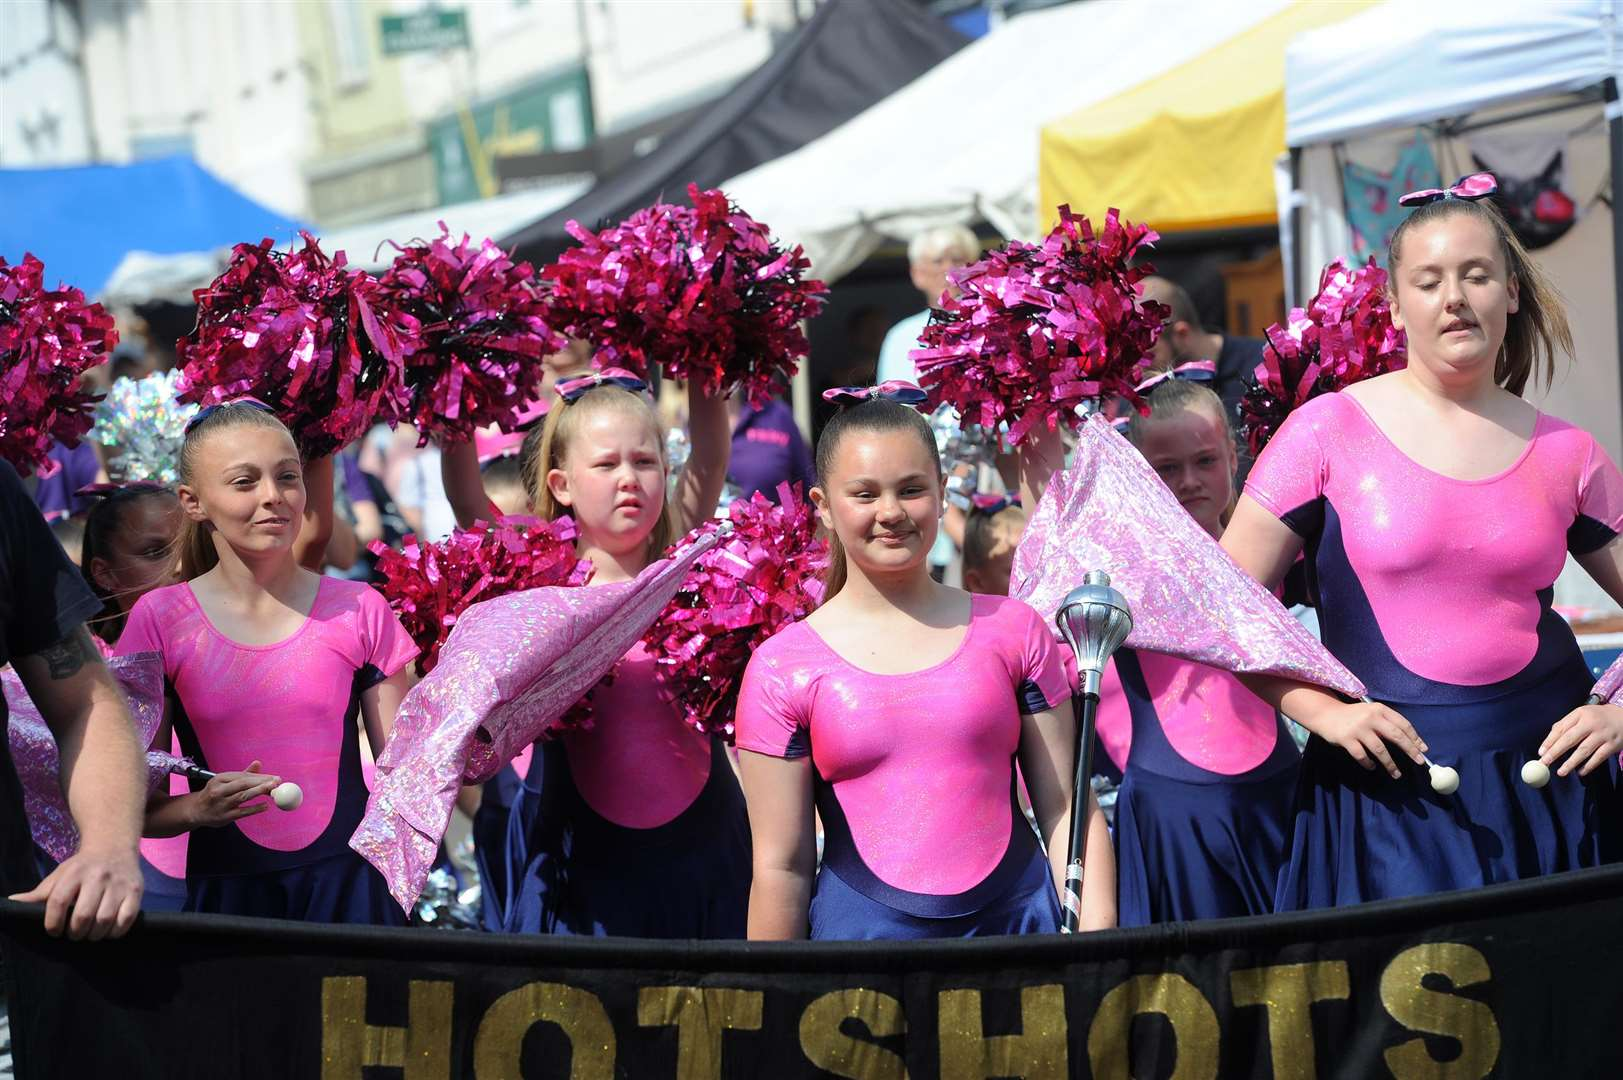 The Hotshots majorettes entertained once the parade reached the Abbey Gardens